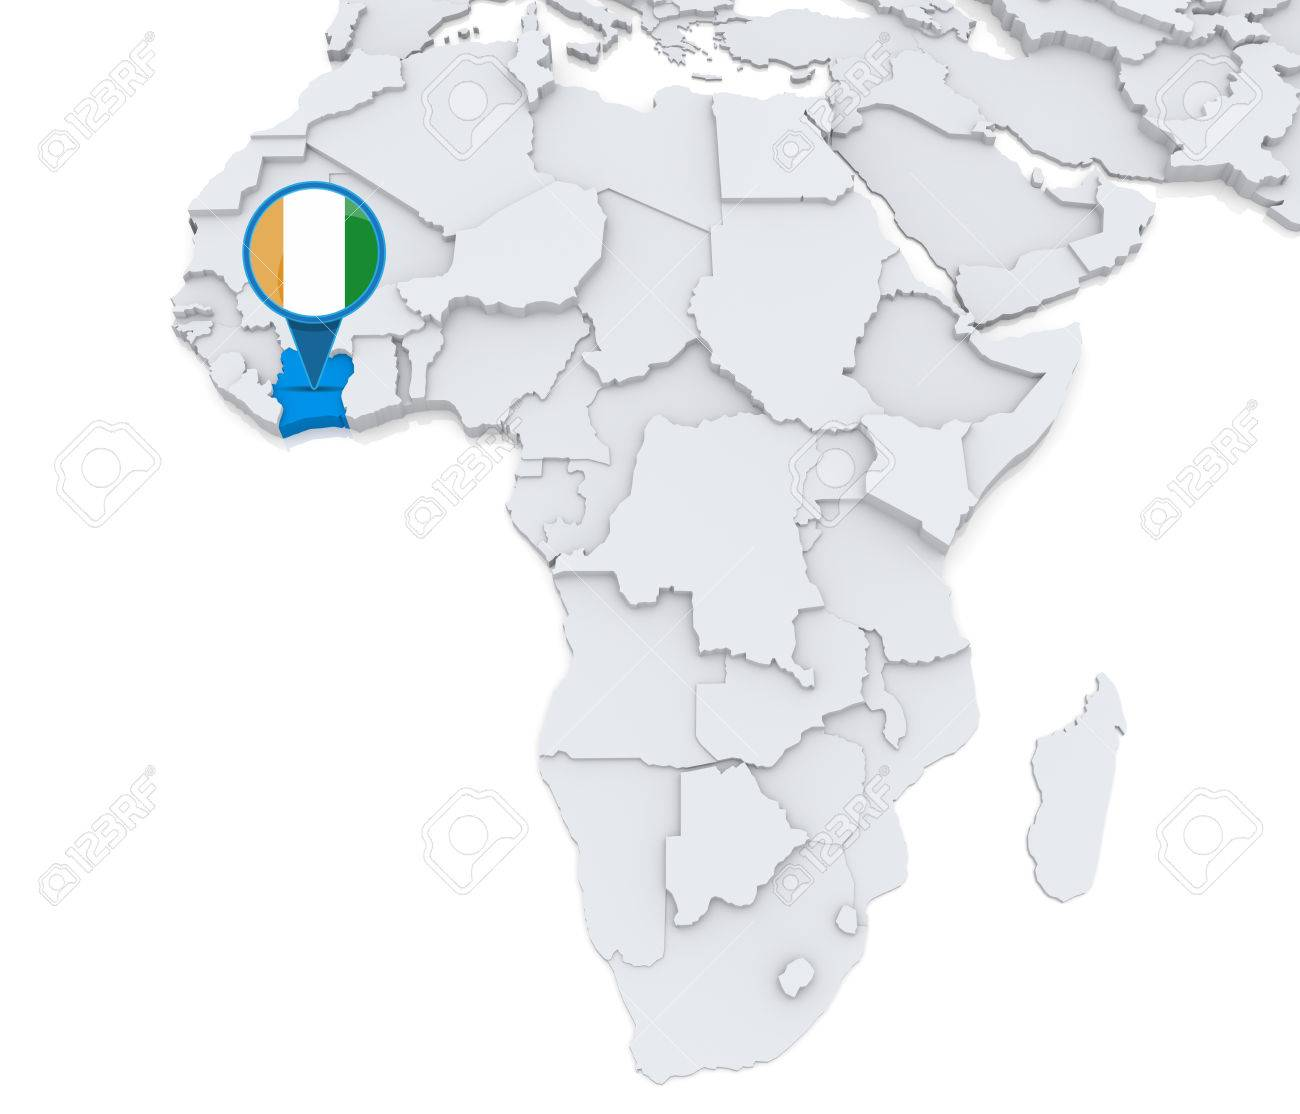 Highlighted Ivory Coast On Map Of Africa With National Flag Stock - Ivory coast map of africa